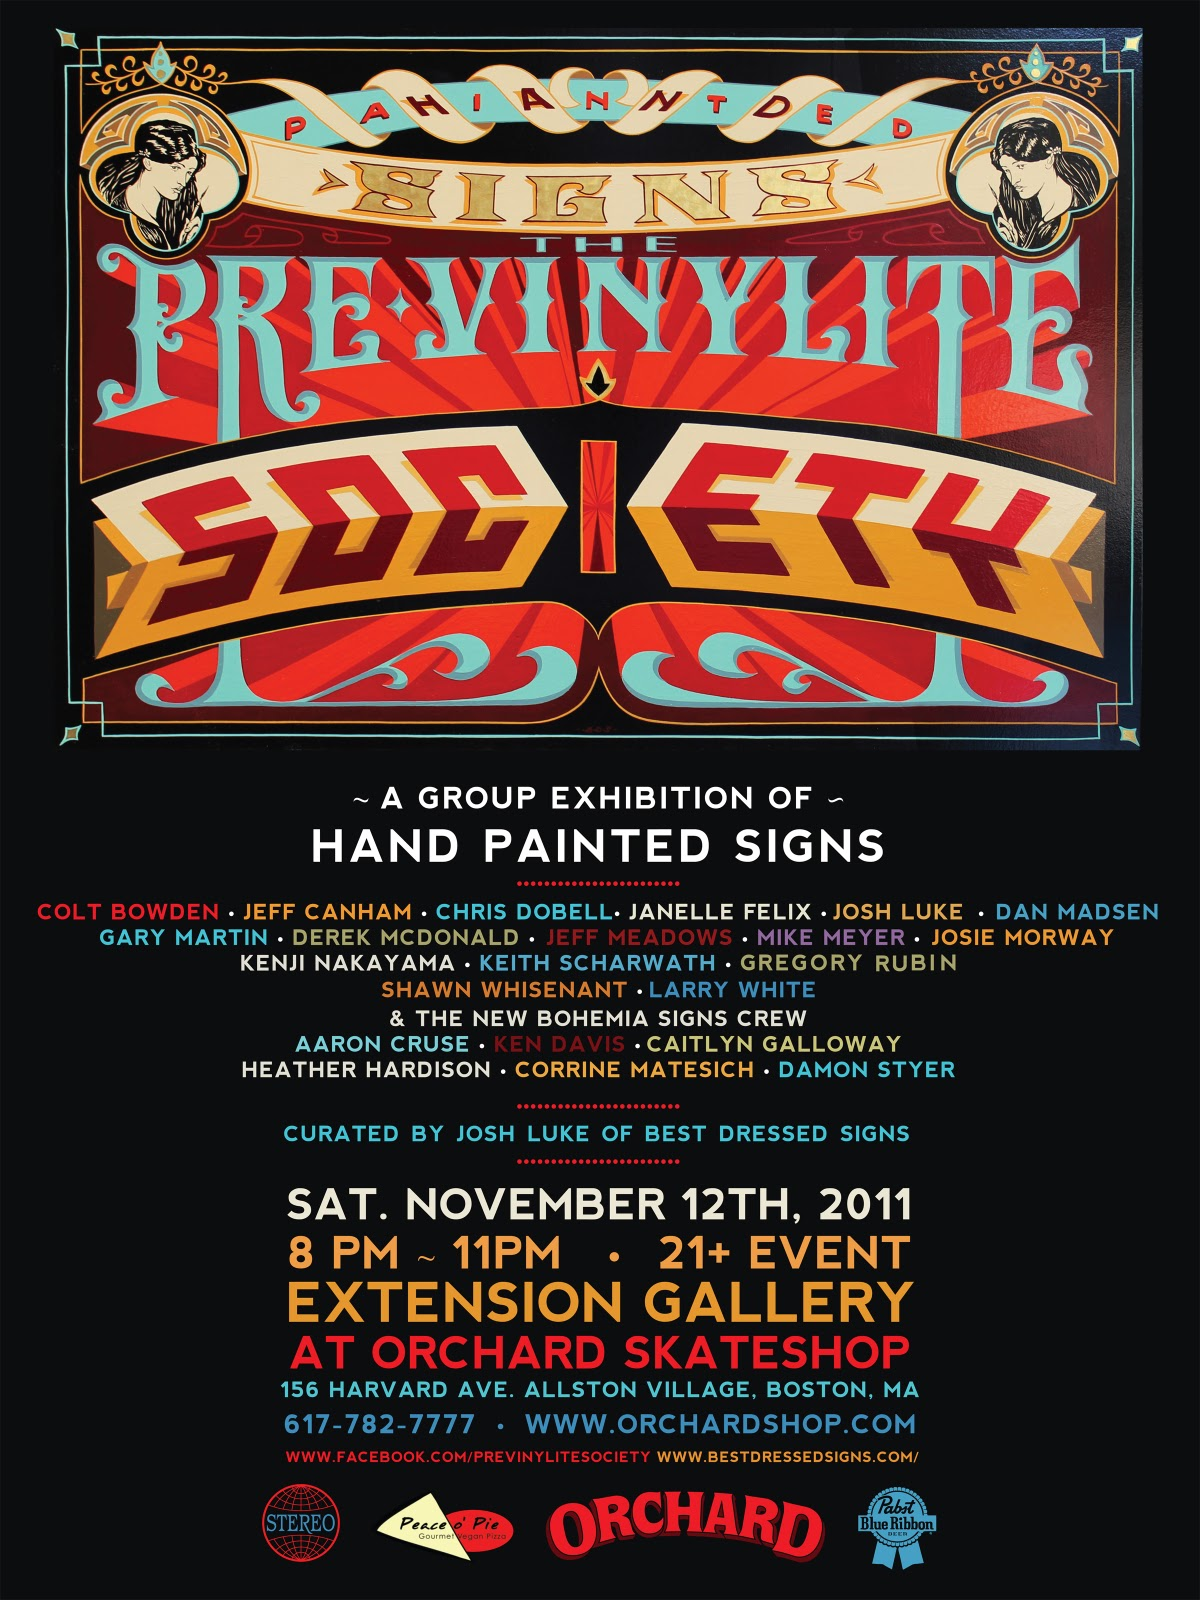 Best Dressed Signs The Previnylite Society Sign Art Show. Foreign Language Translation Services. Do Bioidentical Hormones Work. Morris Material Handling Saint Leo University. Free Keylogger Windows Selling A Va Loan Home. Connecticut General Insurance. American Cleanroom Systems 1000 Payday Loans. Event Planning Workshops Auto Paint Companies. Ncsu Student Health Insurance